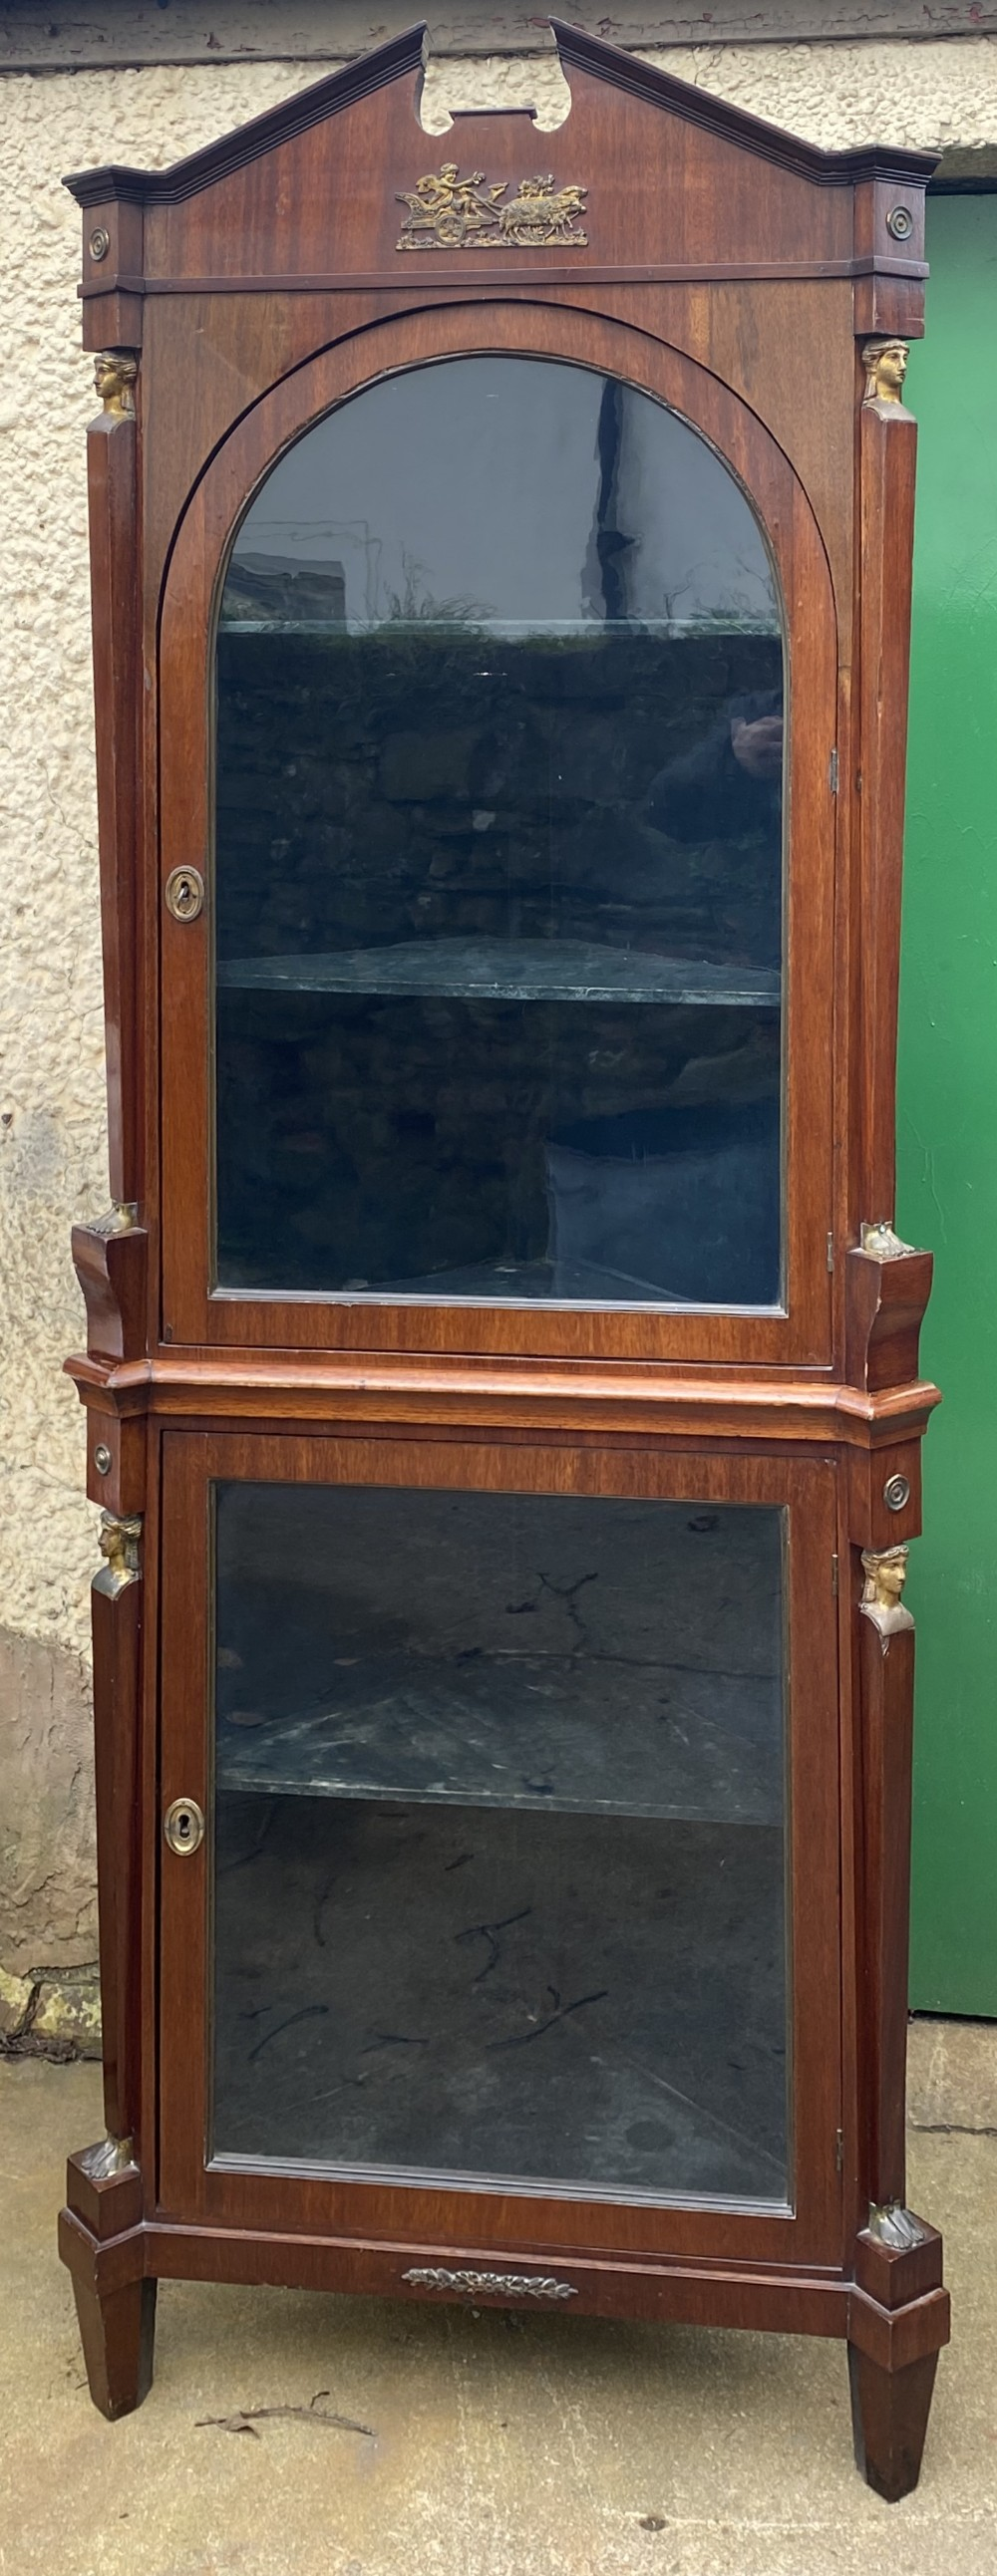 c19th double height corner cupboard with glazed doors